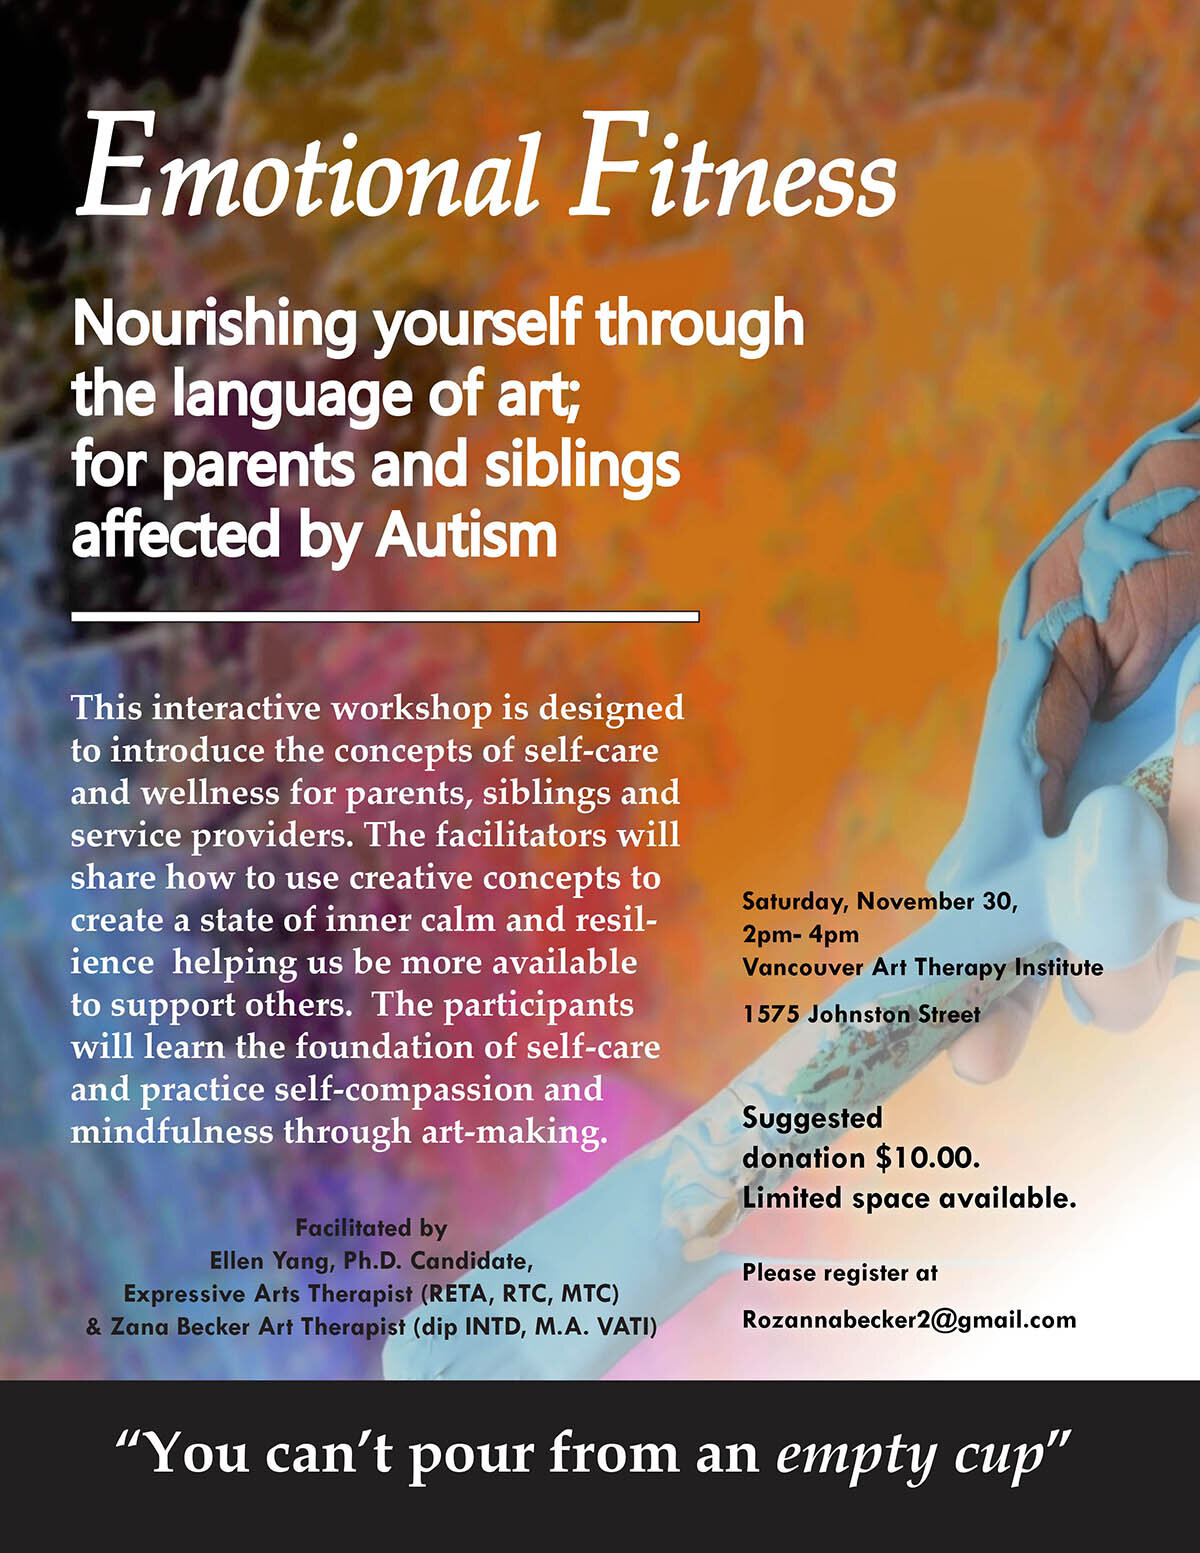 Emotional Fitness Project for Parents and Siblings Affected by Autism